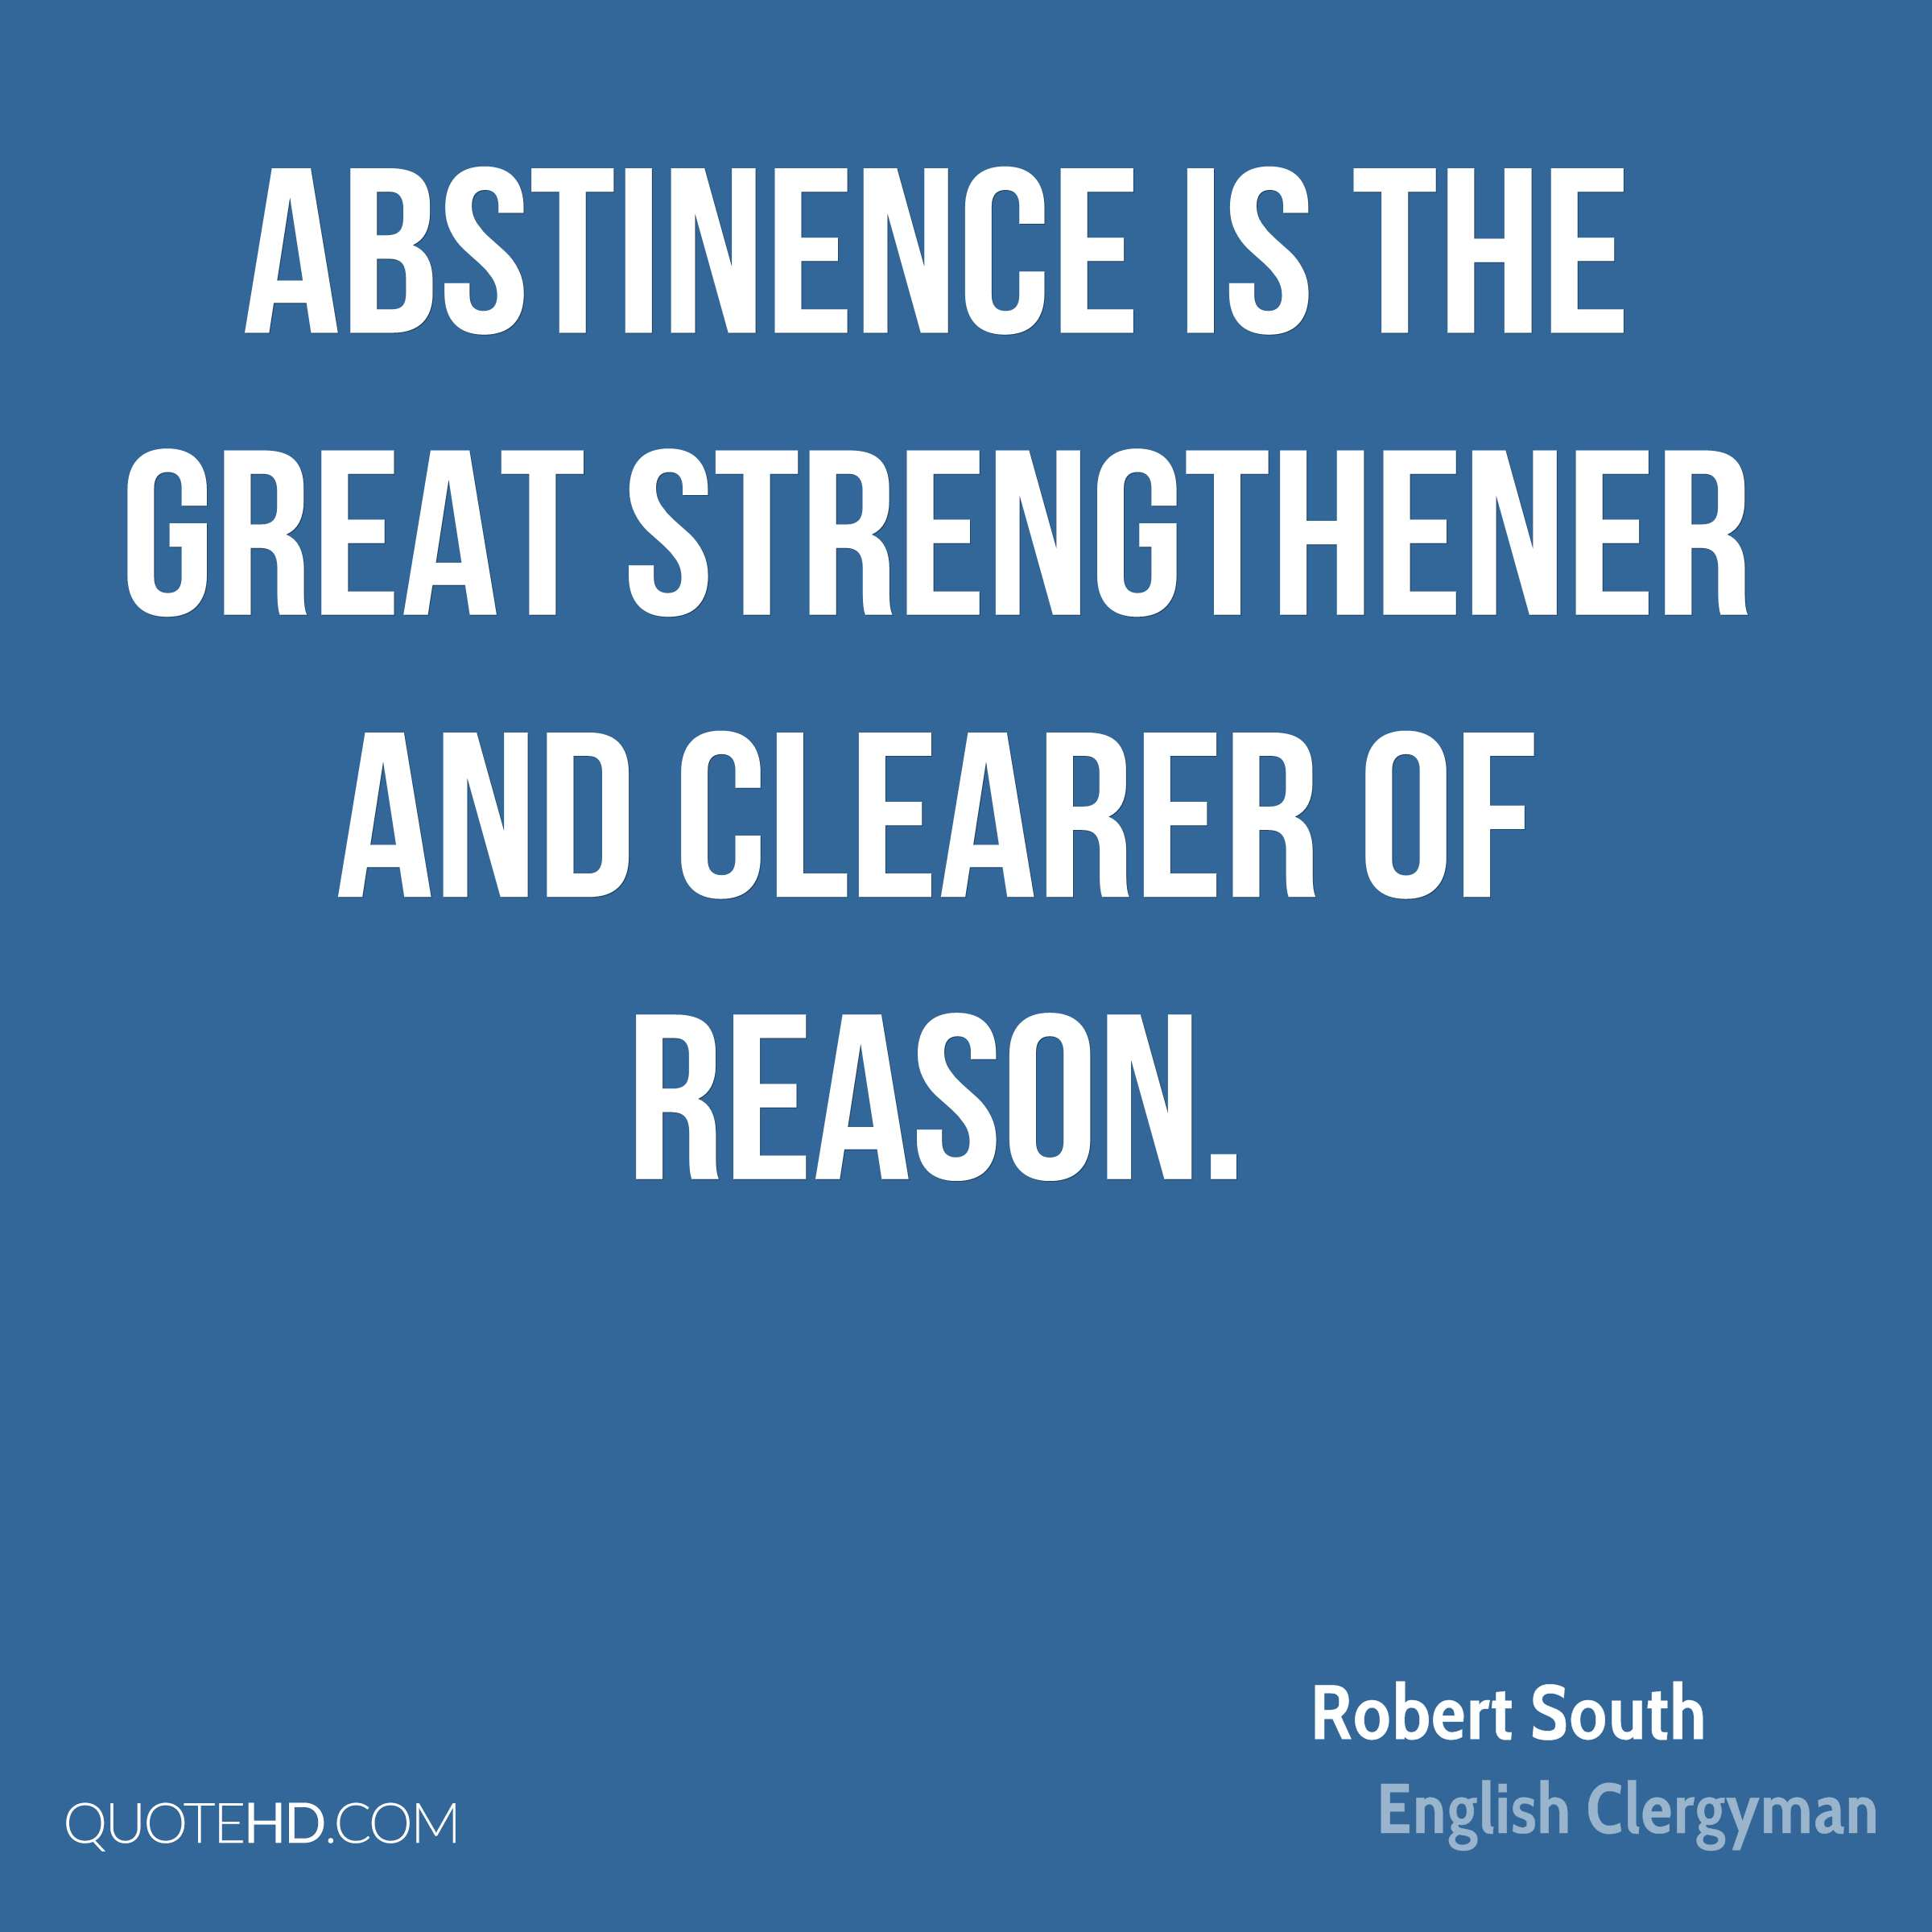 Abstinence is the great strengthener and clearer of reason.